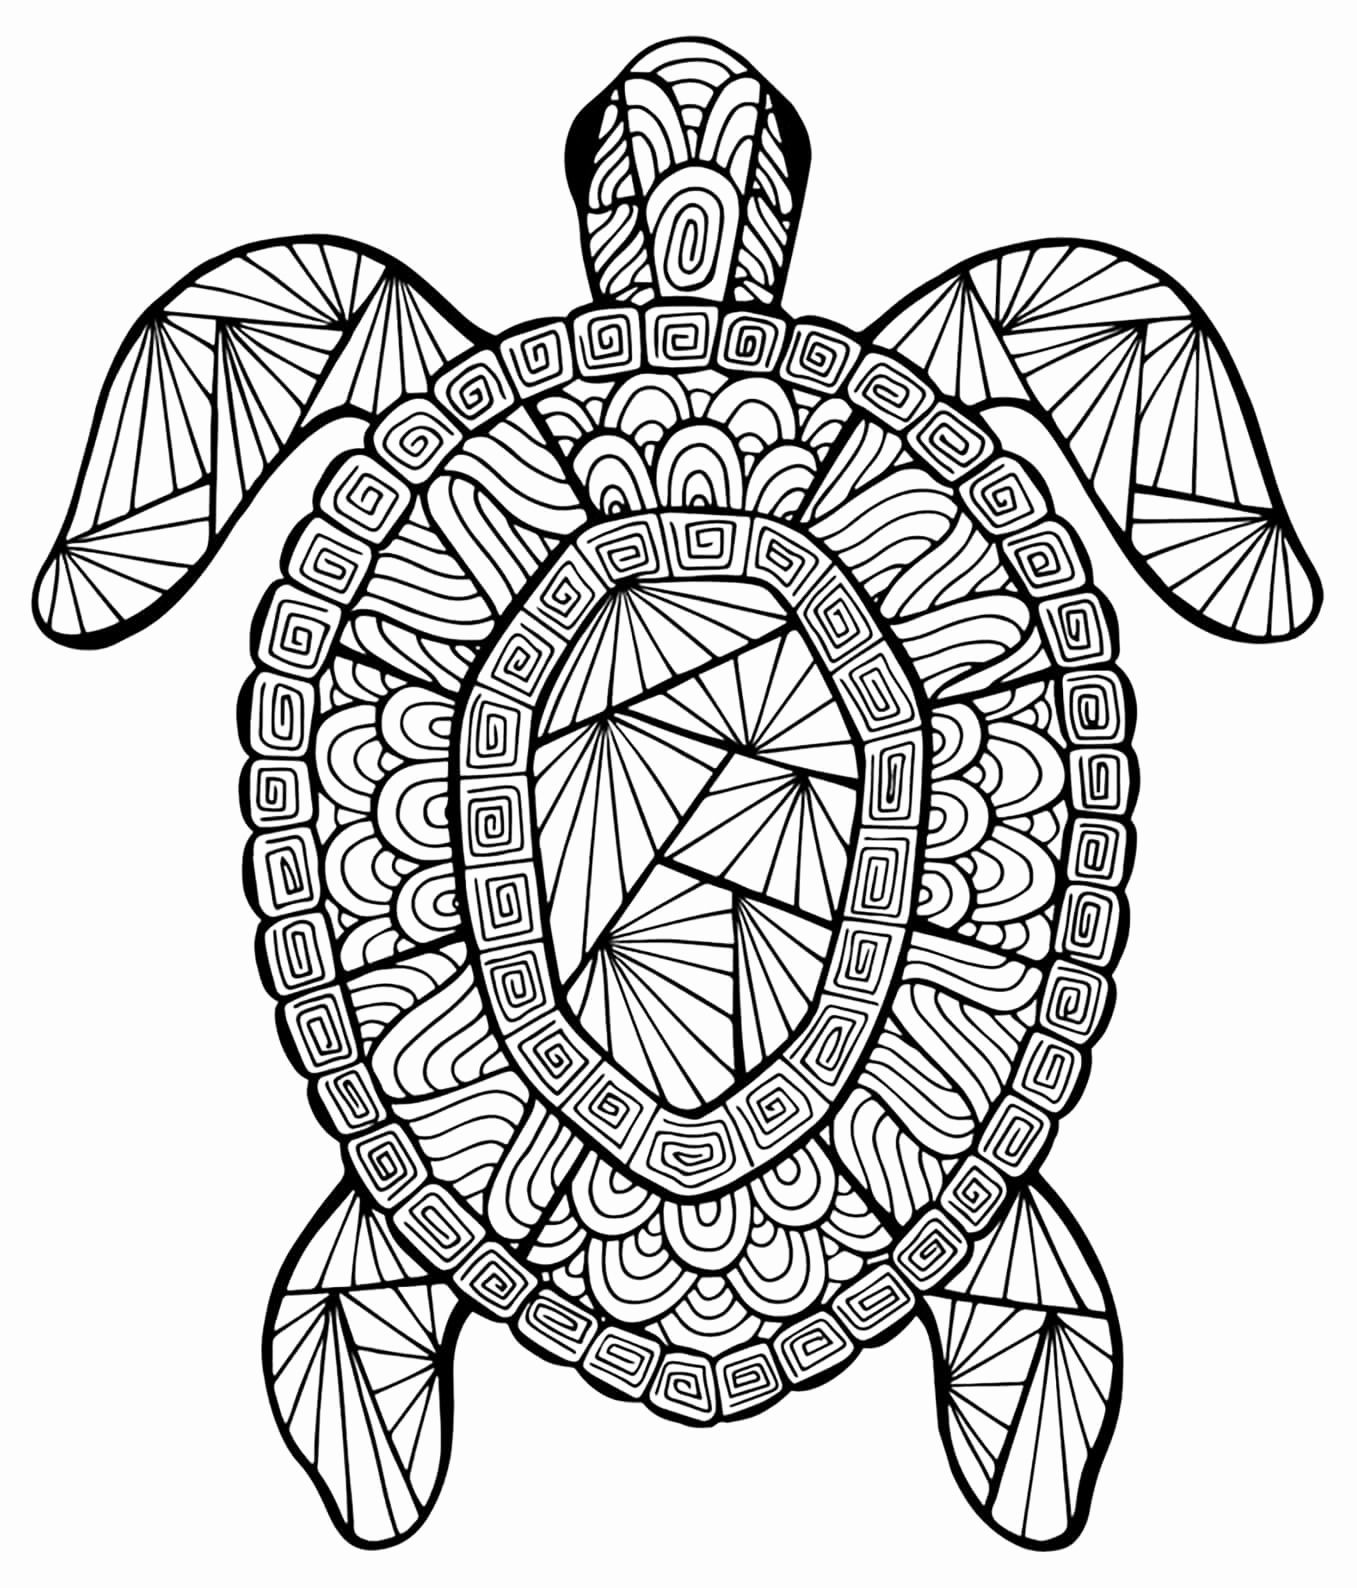 - Coloring Pages Hard Animals In 2020 (With Images) Turtle